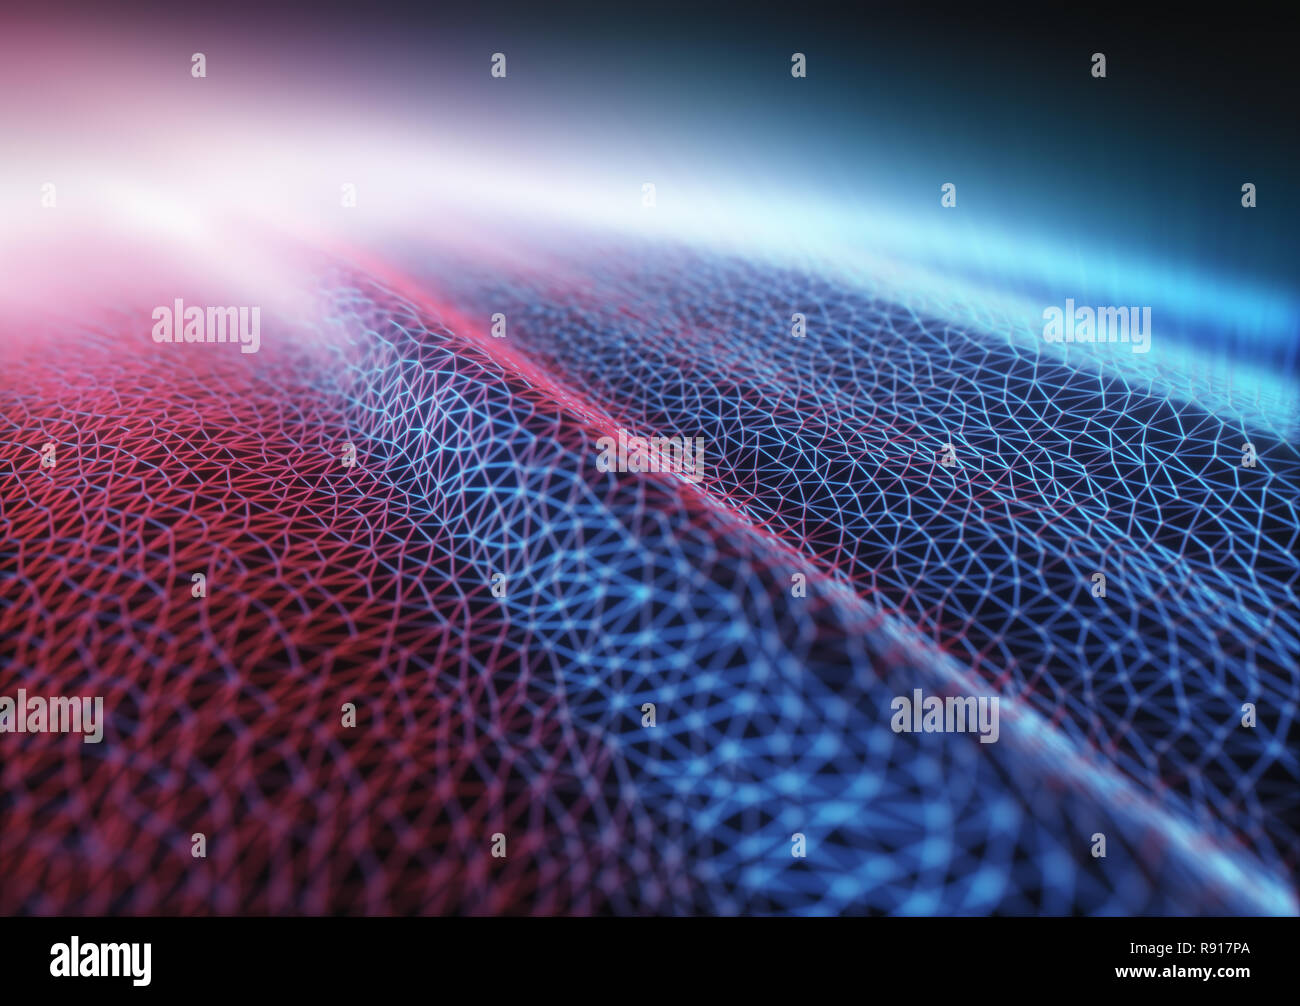 3D illustration. Abstract background image. Colored mesh, interconnected lines. - Stock Image